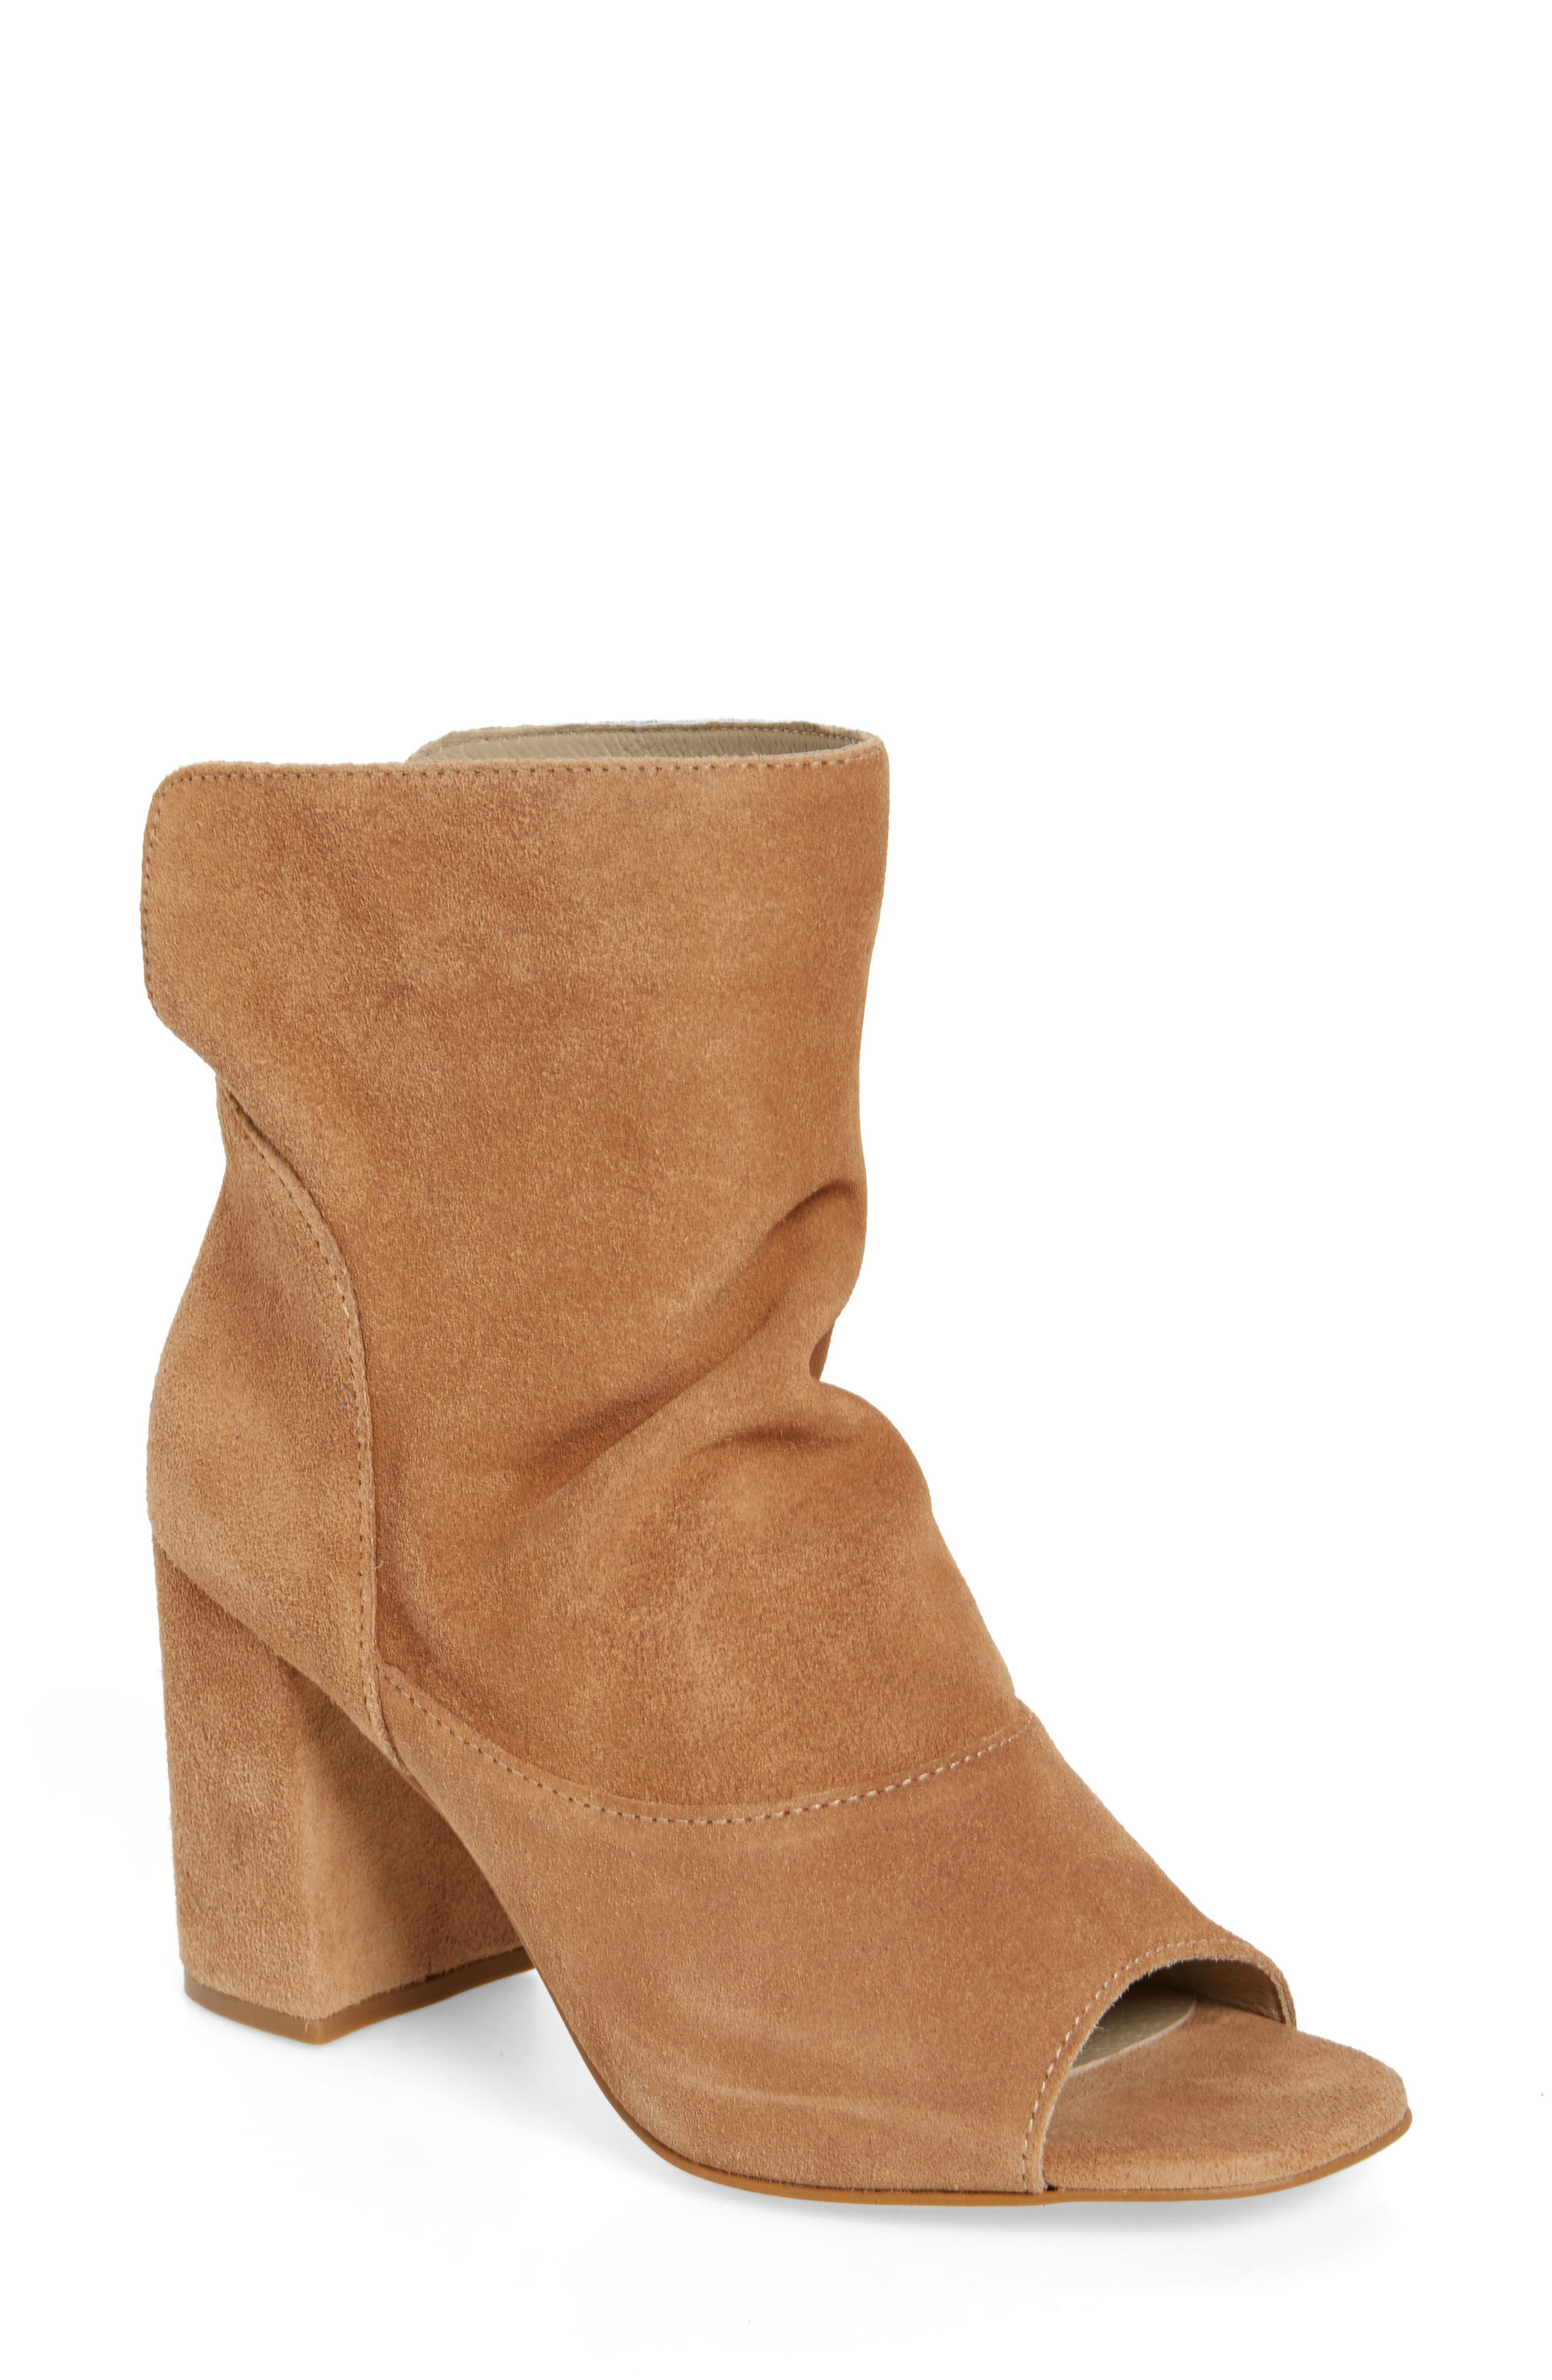 Gordy Peeptoe Bootie,                             Main thumbnail 1, color,                             Natural Suede